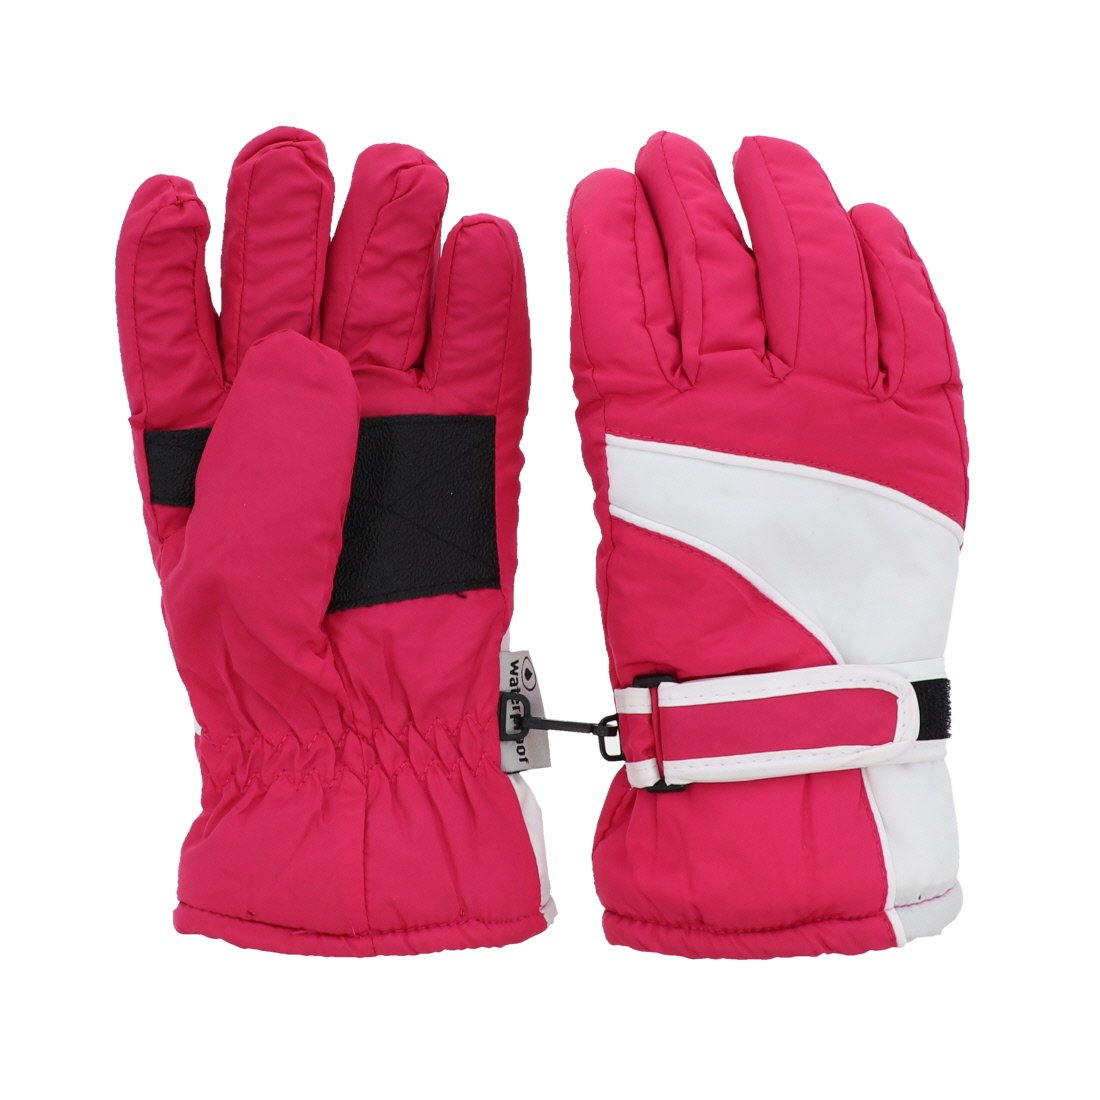 Waterproof White Trim Design Ski Gloves for Youth